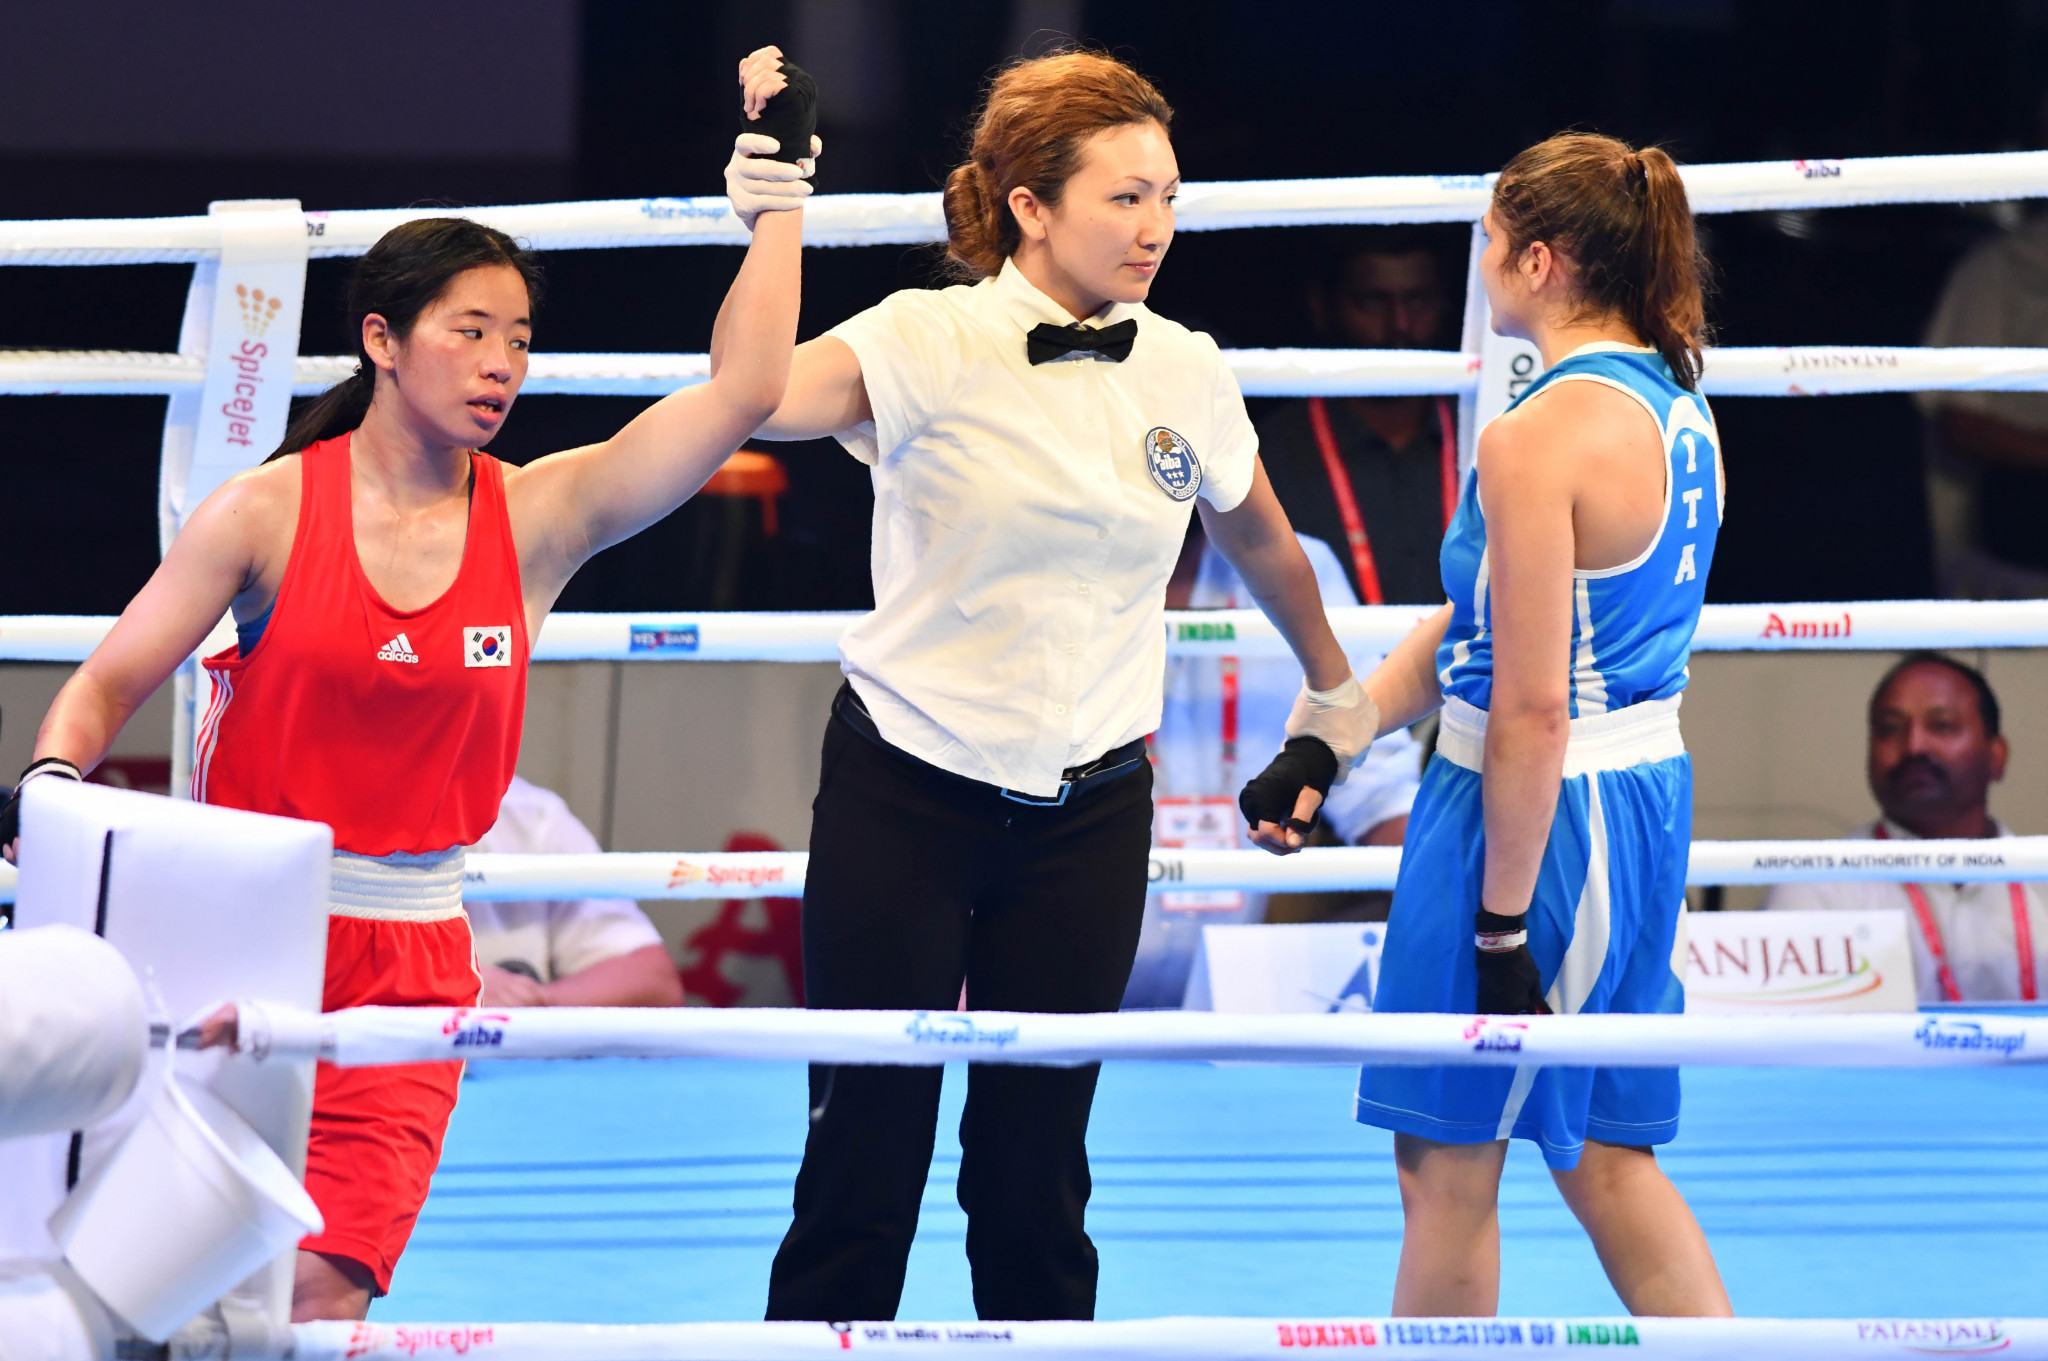 Nearly 500 boxers registered for AIBA Youth World Boxing Championships